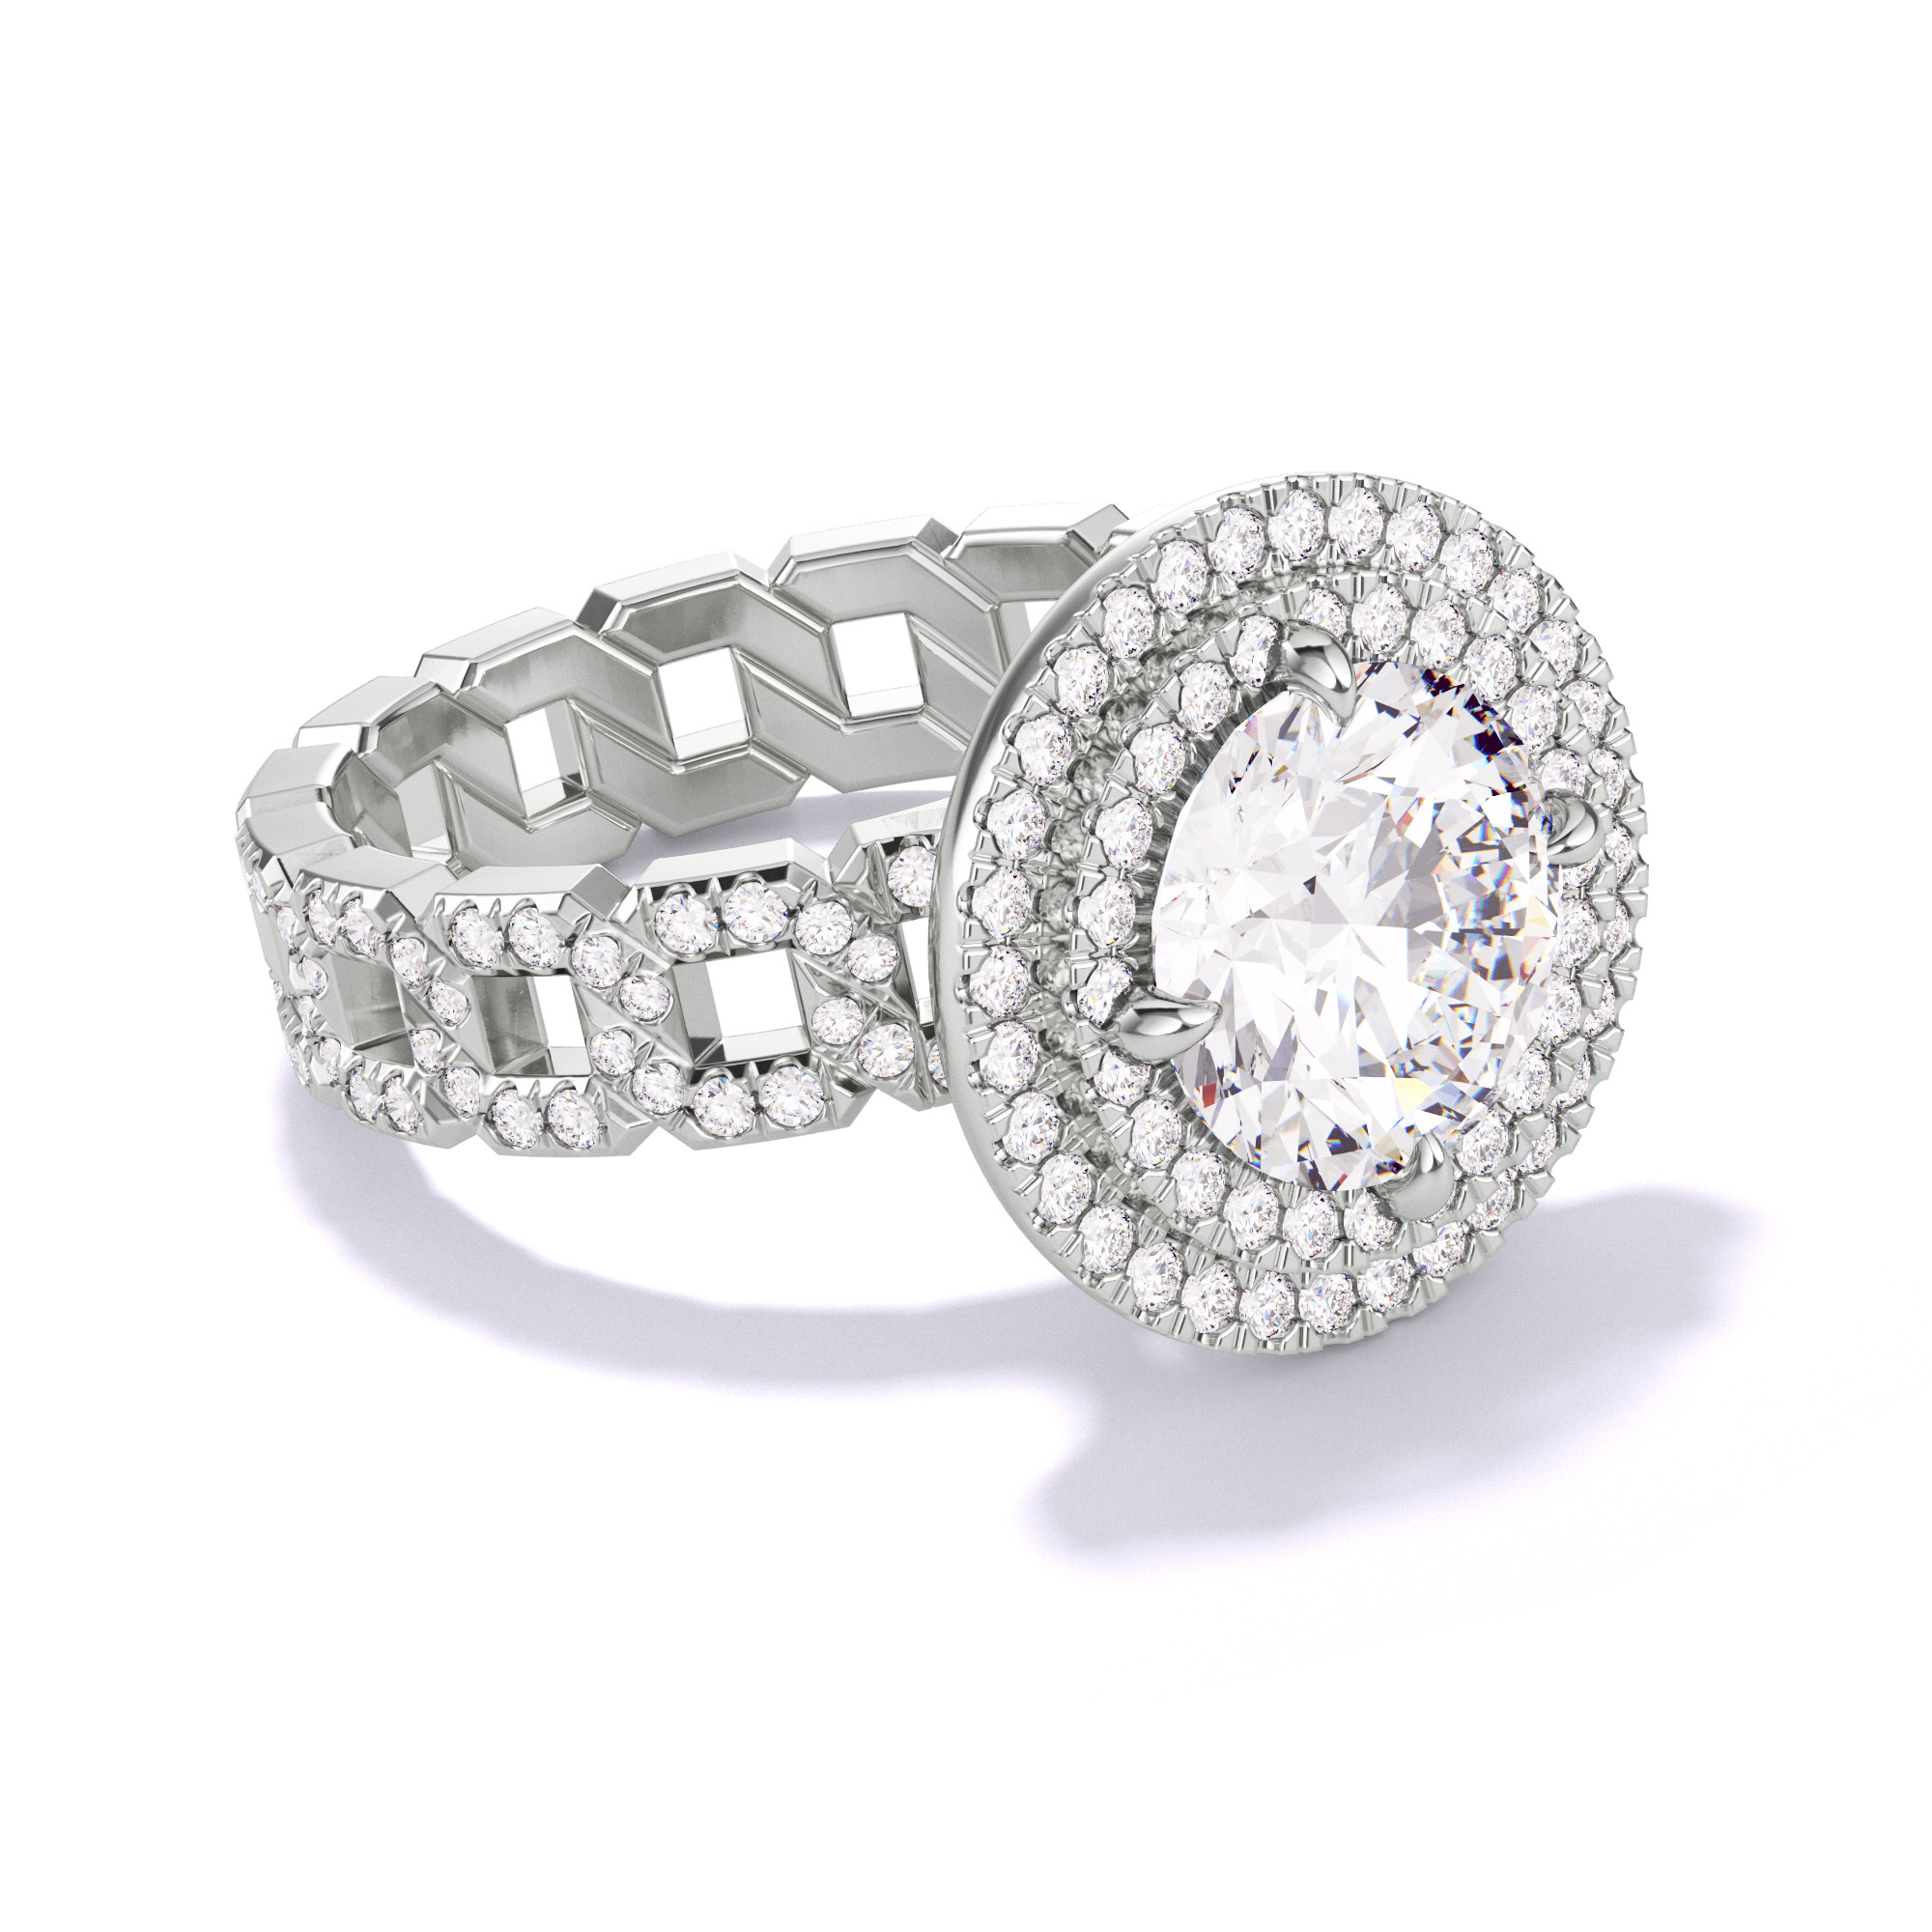 ROUND CUT, DOUBLE HALO SETTING, 16 PAVE LINKS, PLATINUM